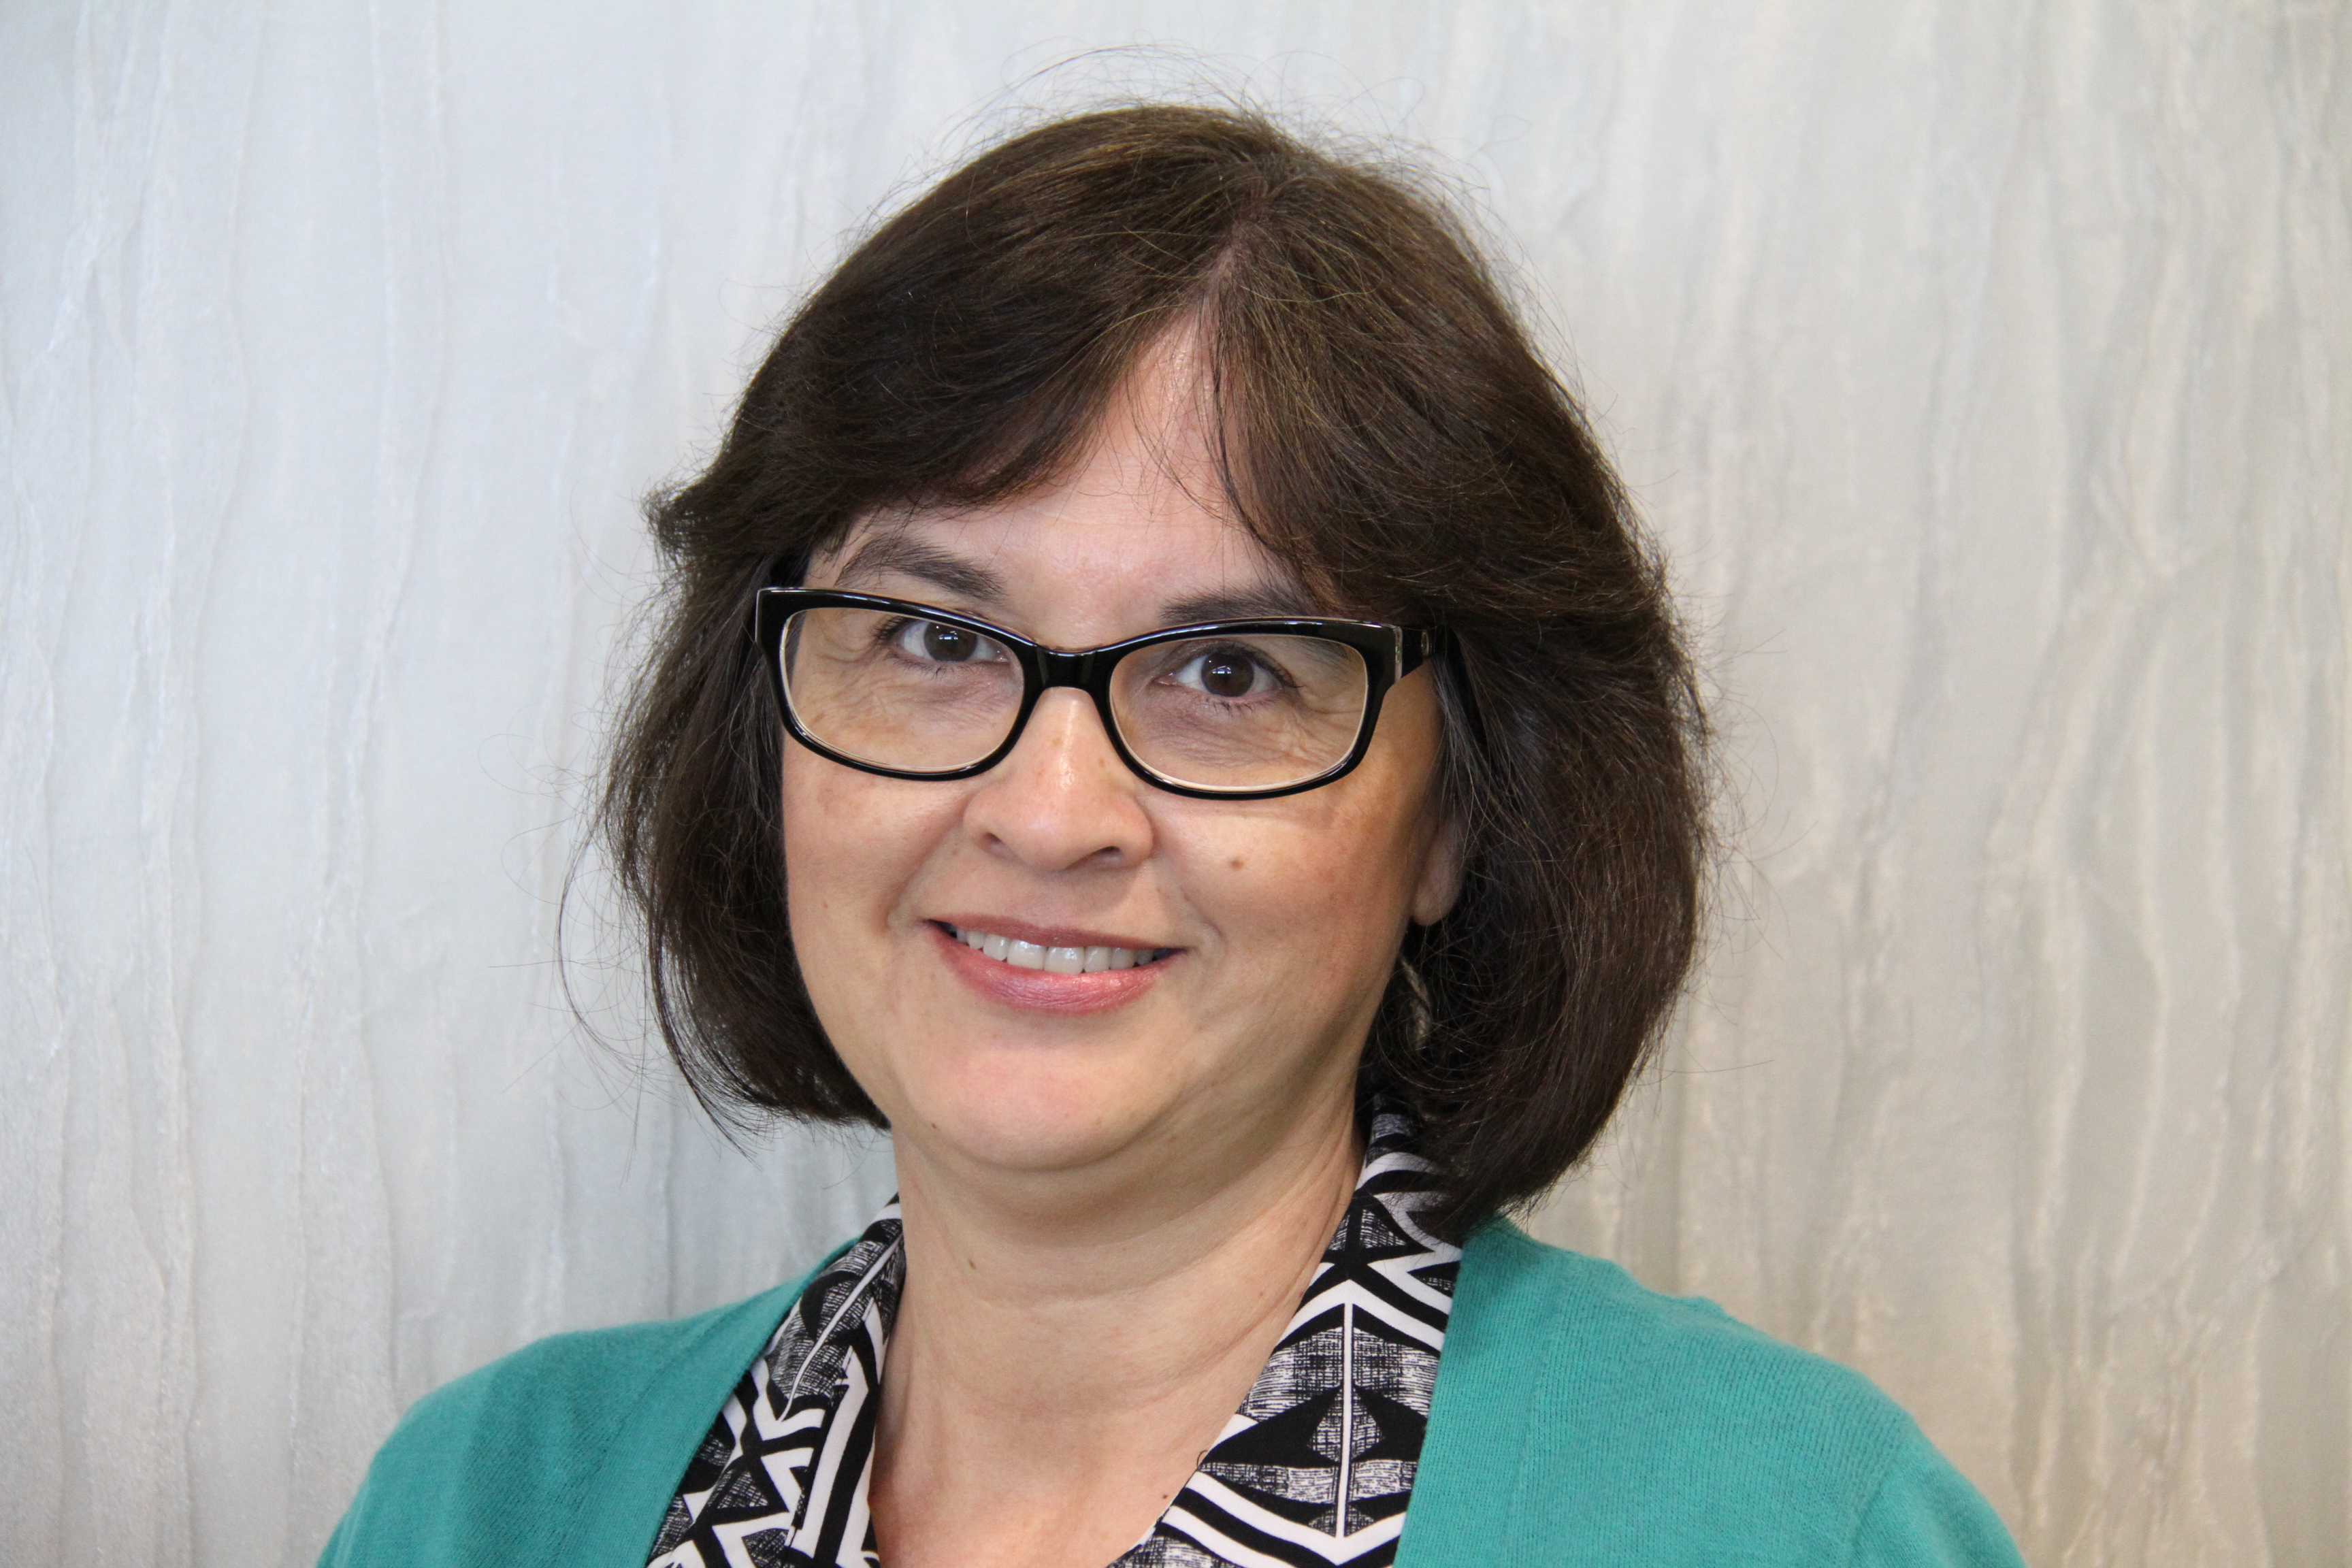 Liliana Endo-Munoz senior scientific administrator